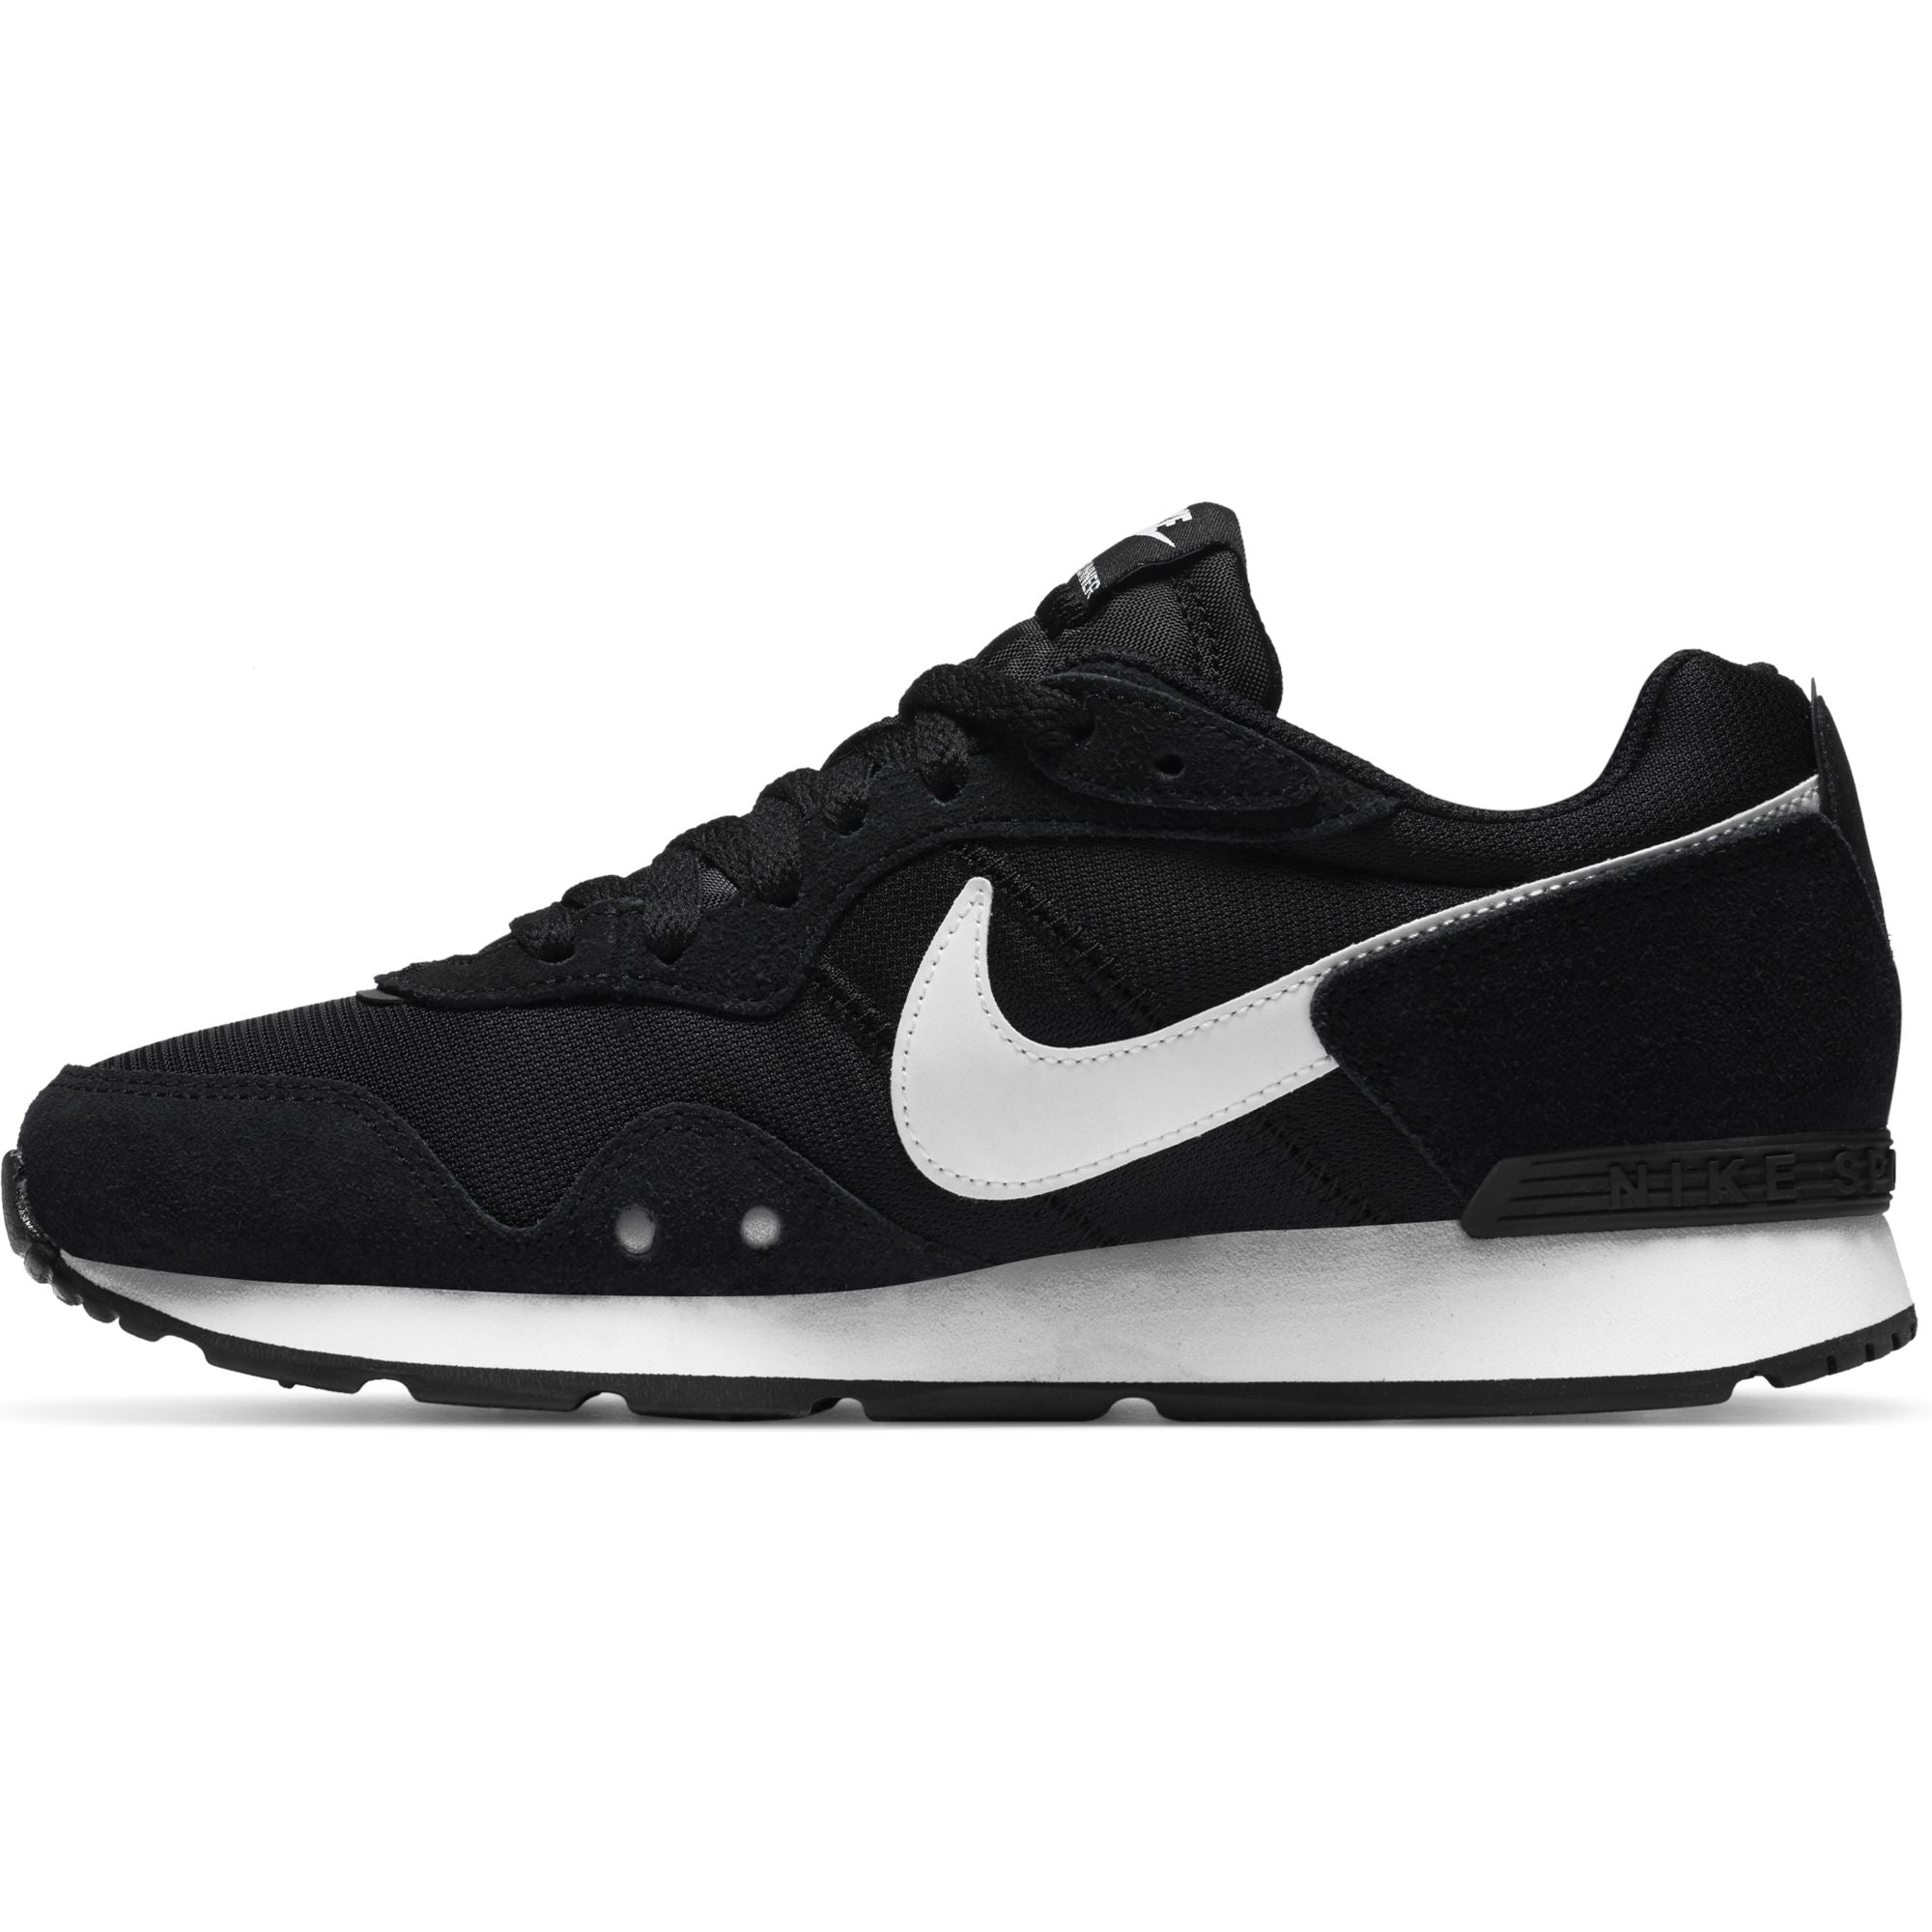 Nike Womens Venture Runner - Black/White-Black SP-Footwear-Womens Nike